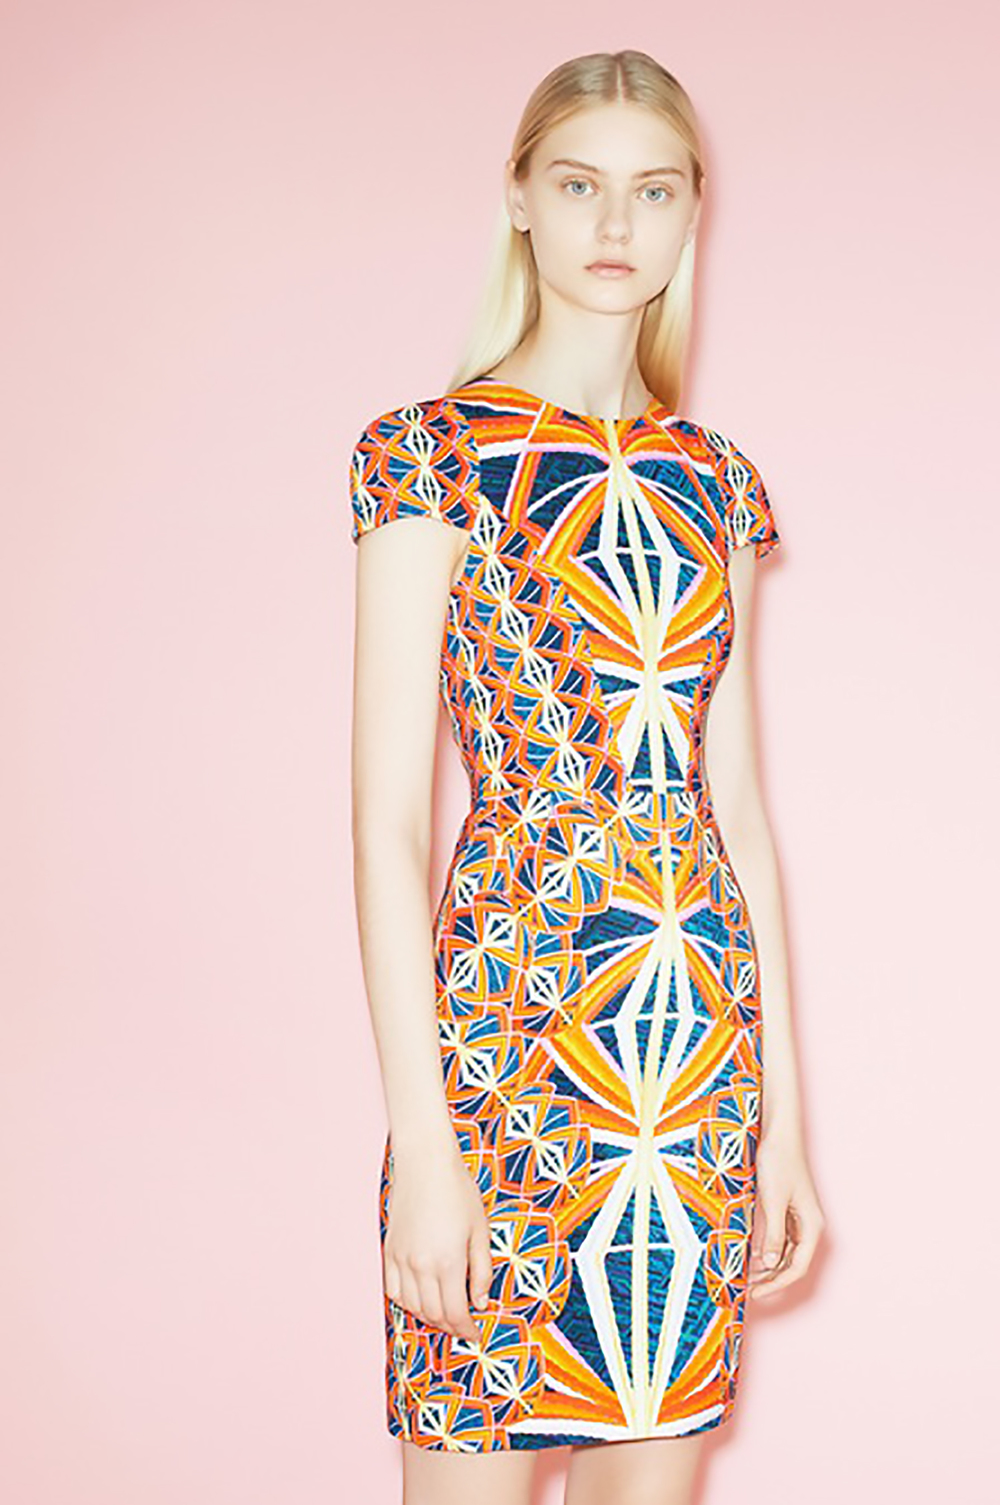 style.com peter pilotto resort 2014 look 28 peter pilotto 1500.jpg